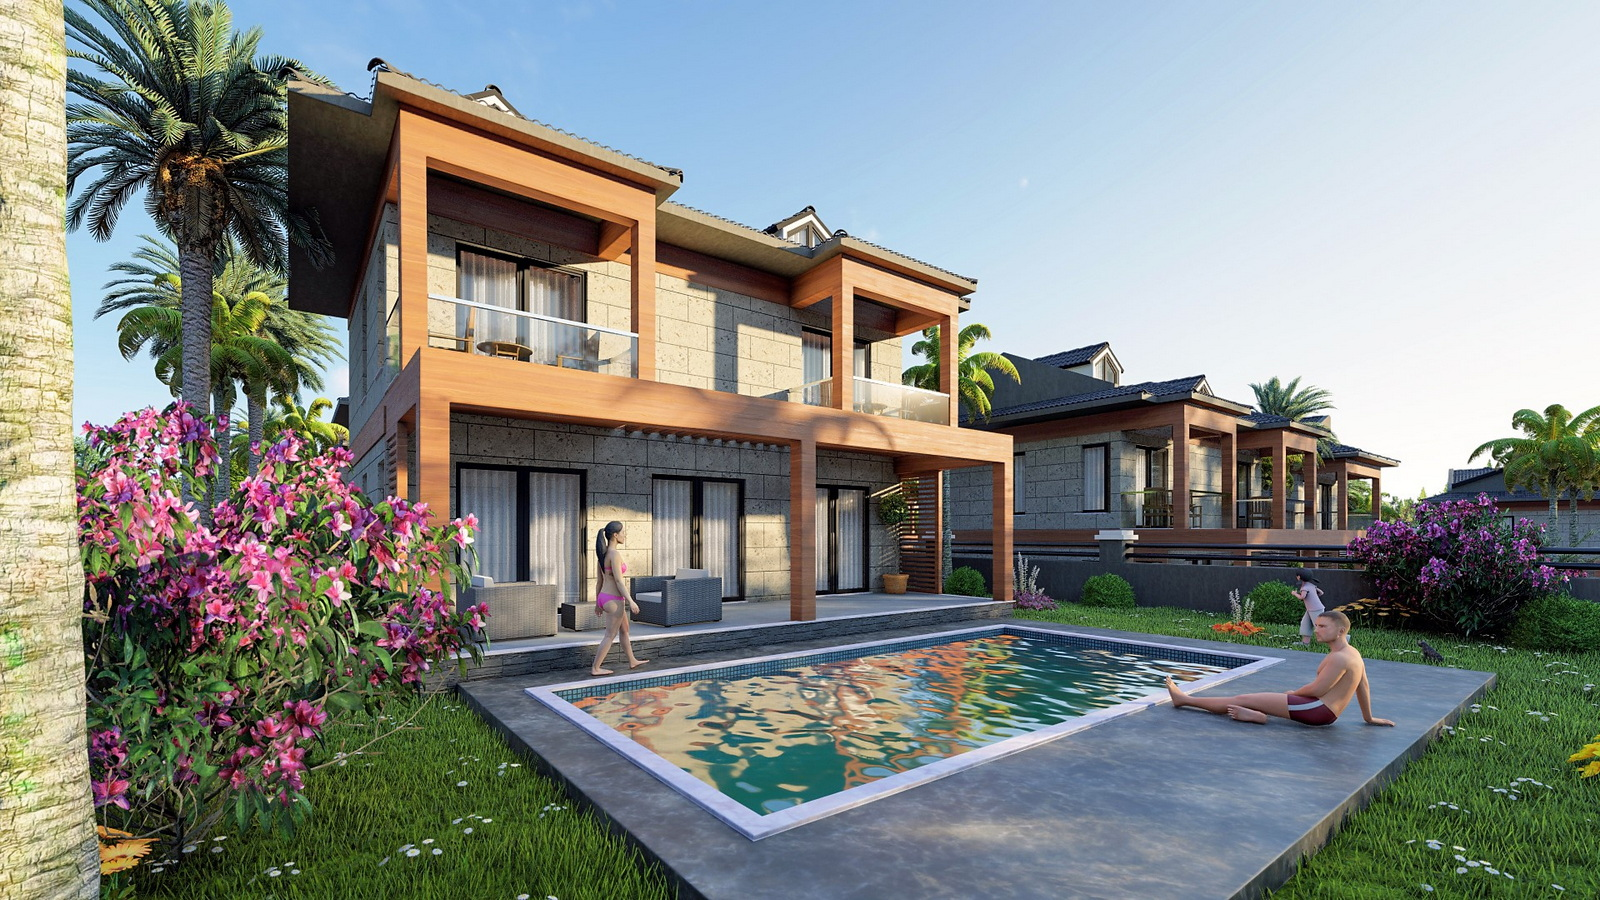 4 Bedroom Luxury Villas With Sea View & Private Pool For Sale